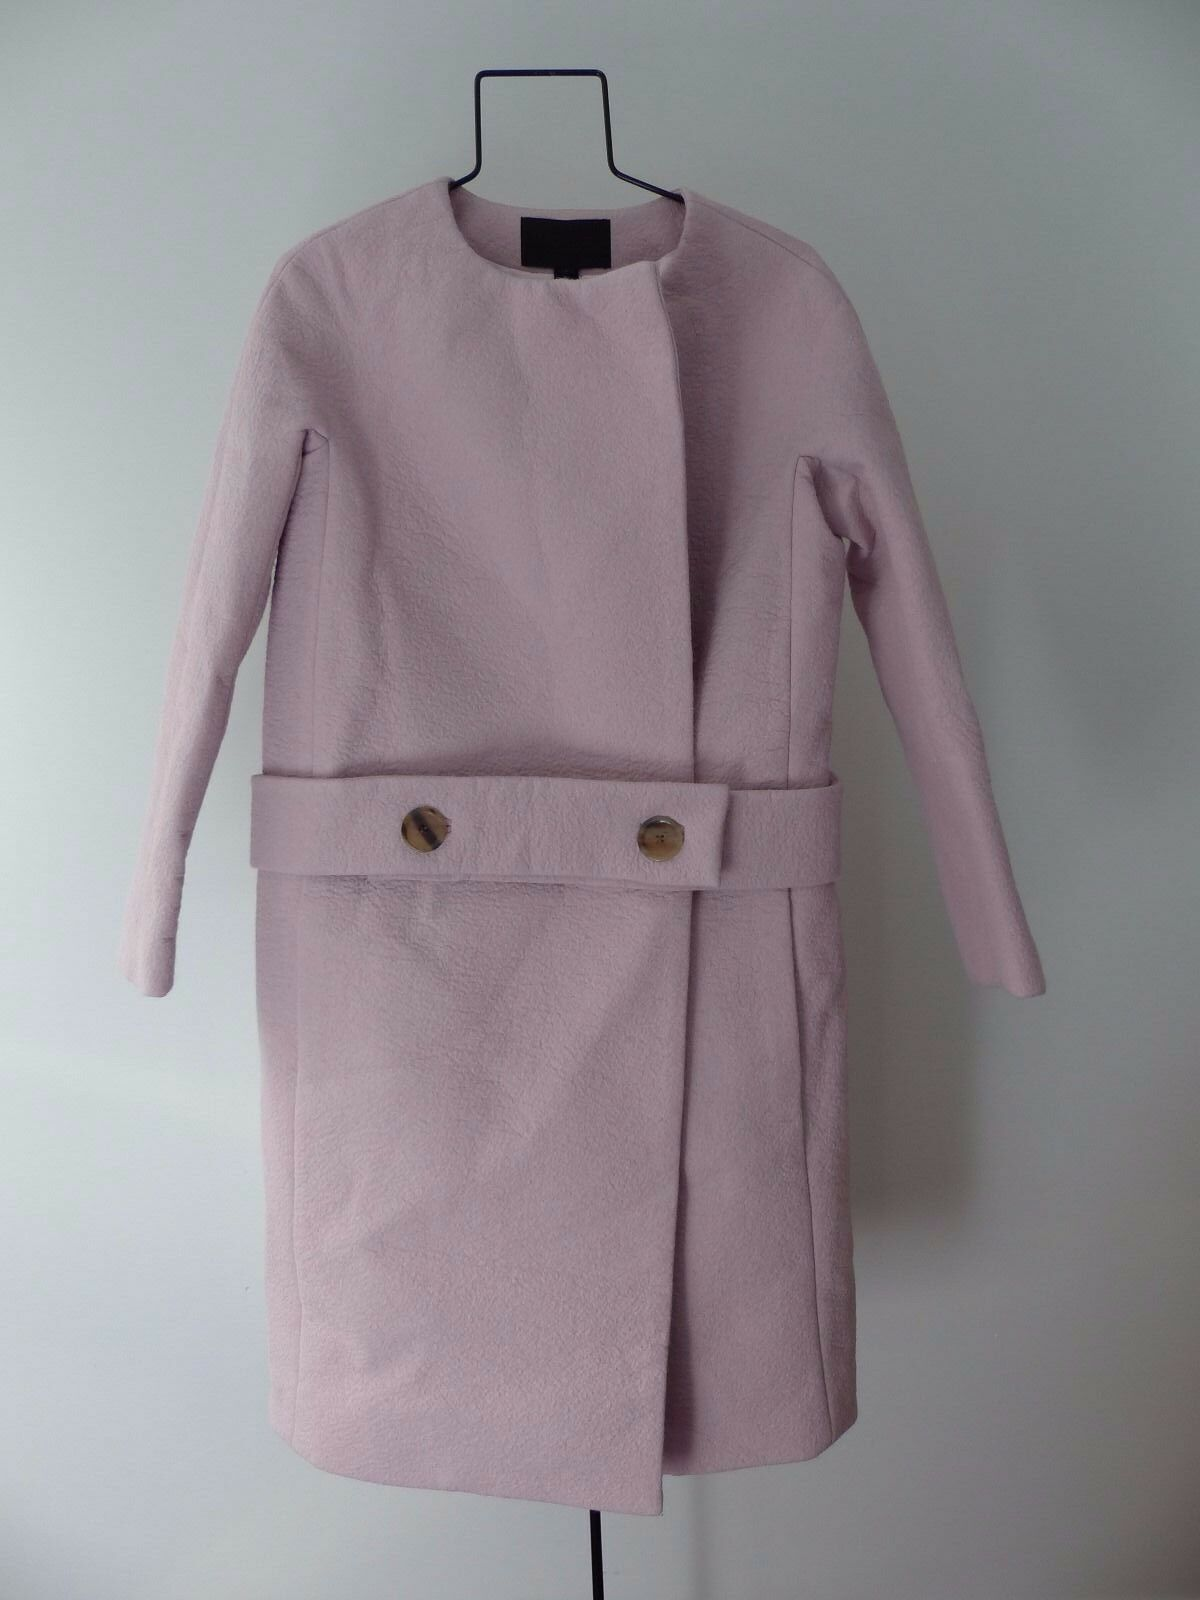 J. Crew COLLECTION DROP-WAIST COLLARLESS COAT size 4 pink  sold out